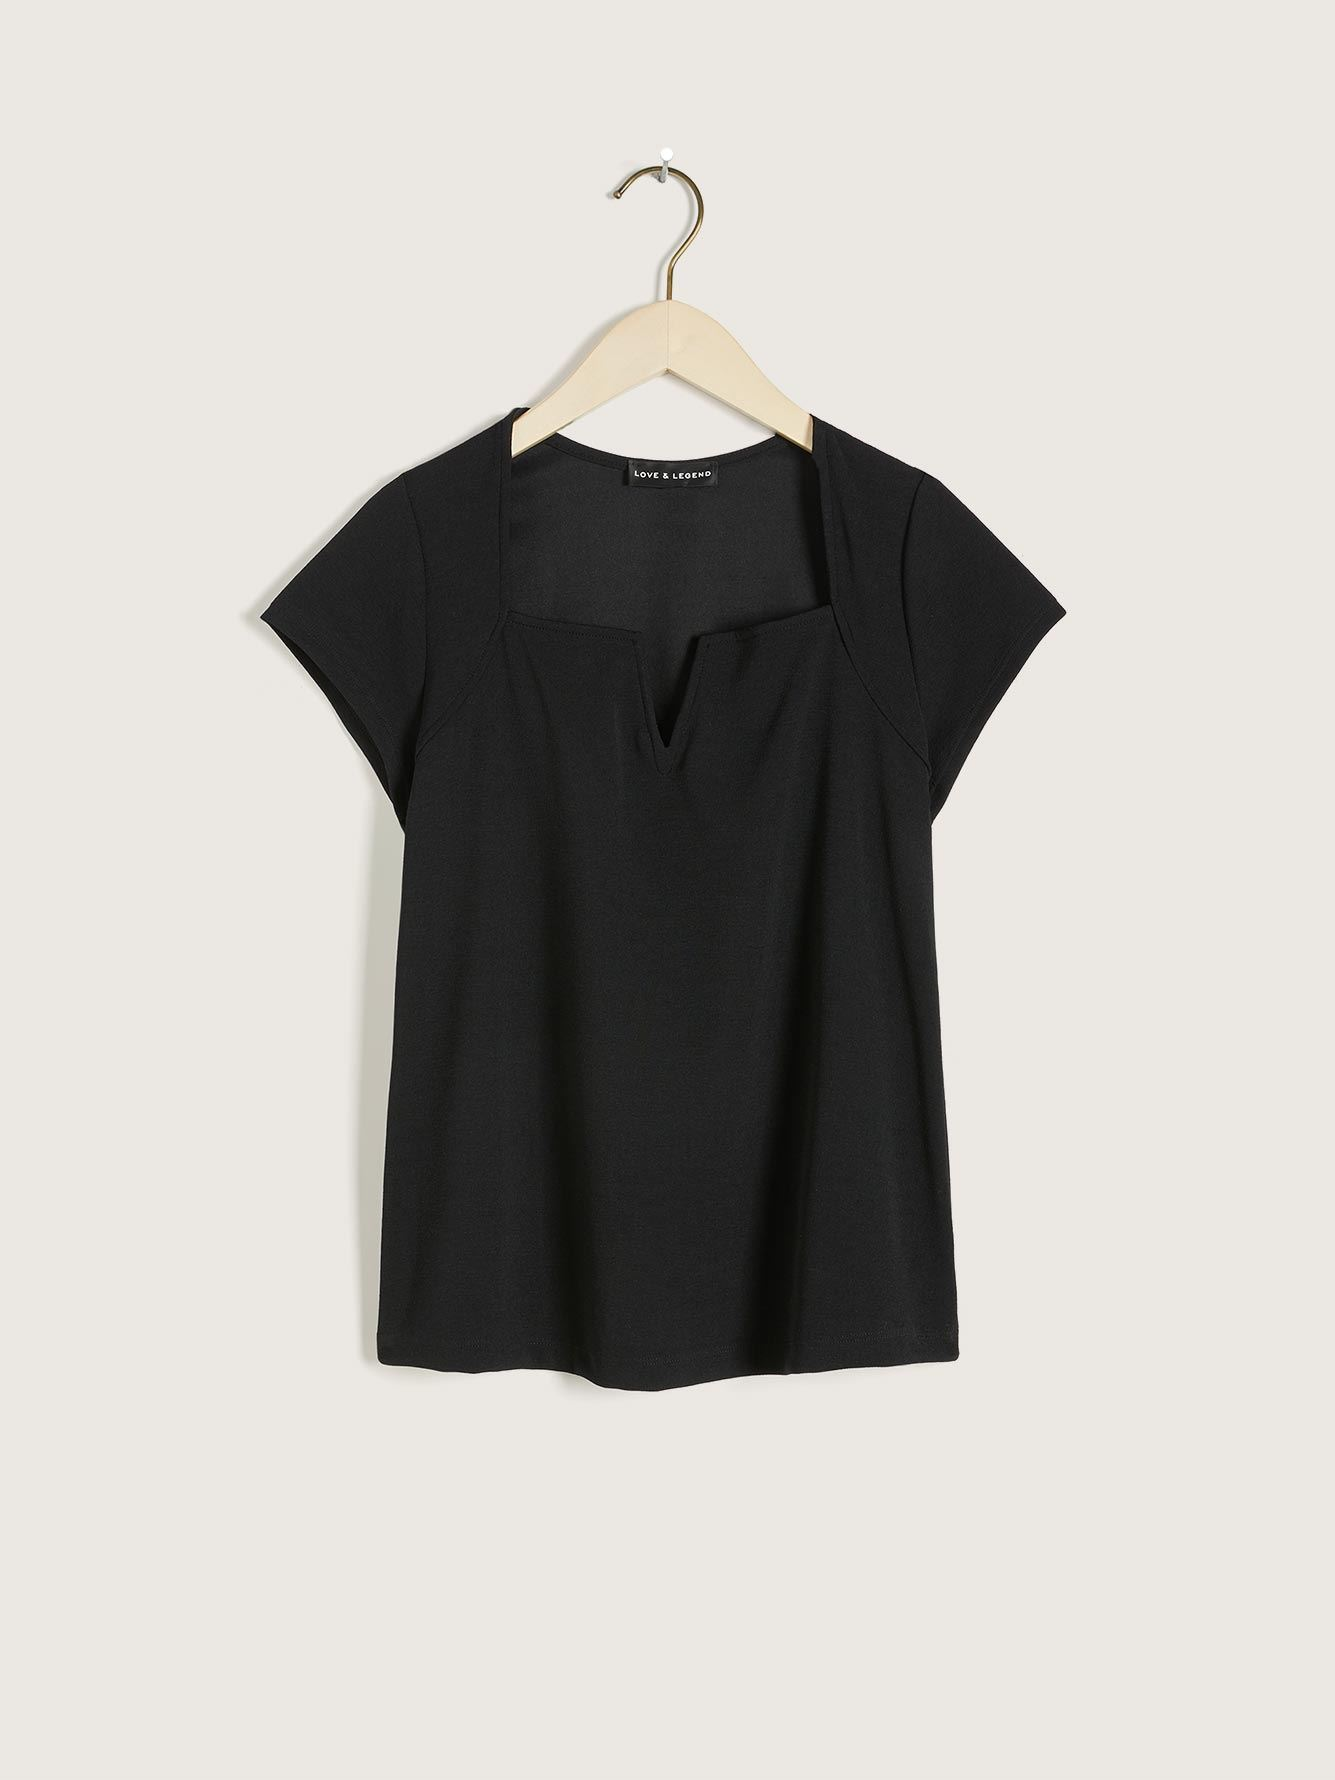 Short-Sleeve Tee with V-Notch Detail - Love & Legend